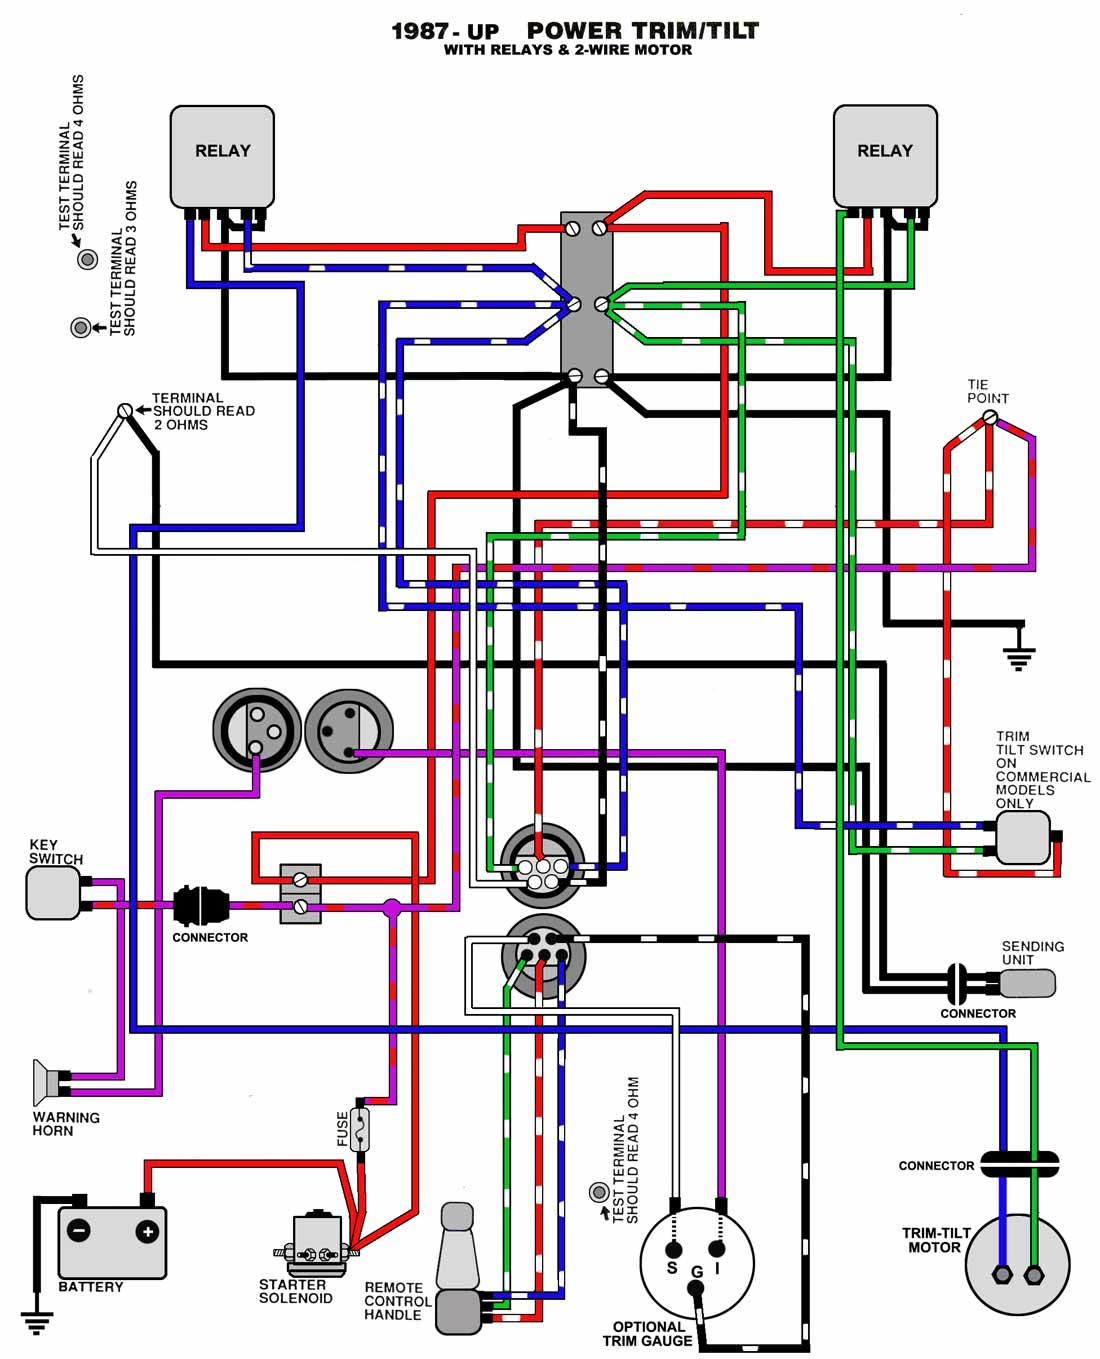 TnT_87_UP mastertech marine evinrude johnson outboard wiring diagrams johnson outboard wiring schematic at webbmarketing.co